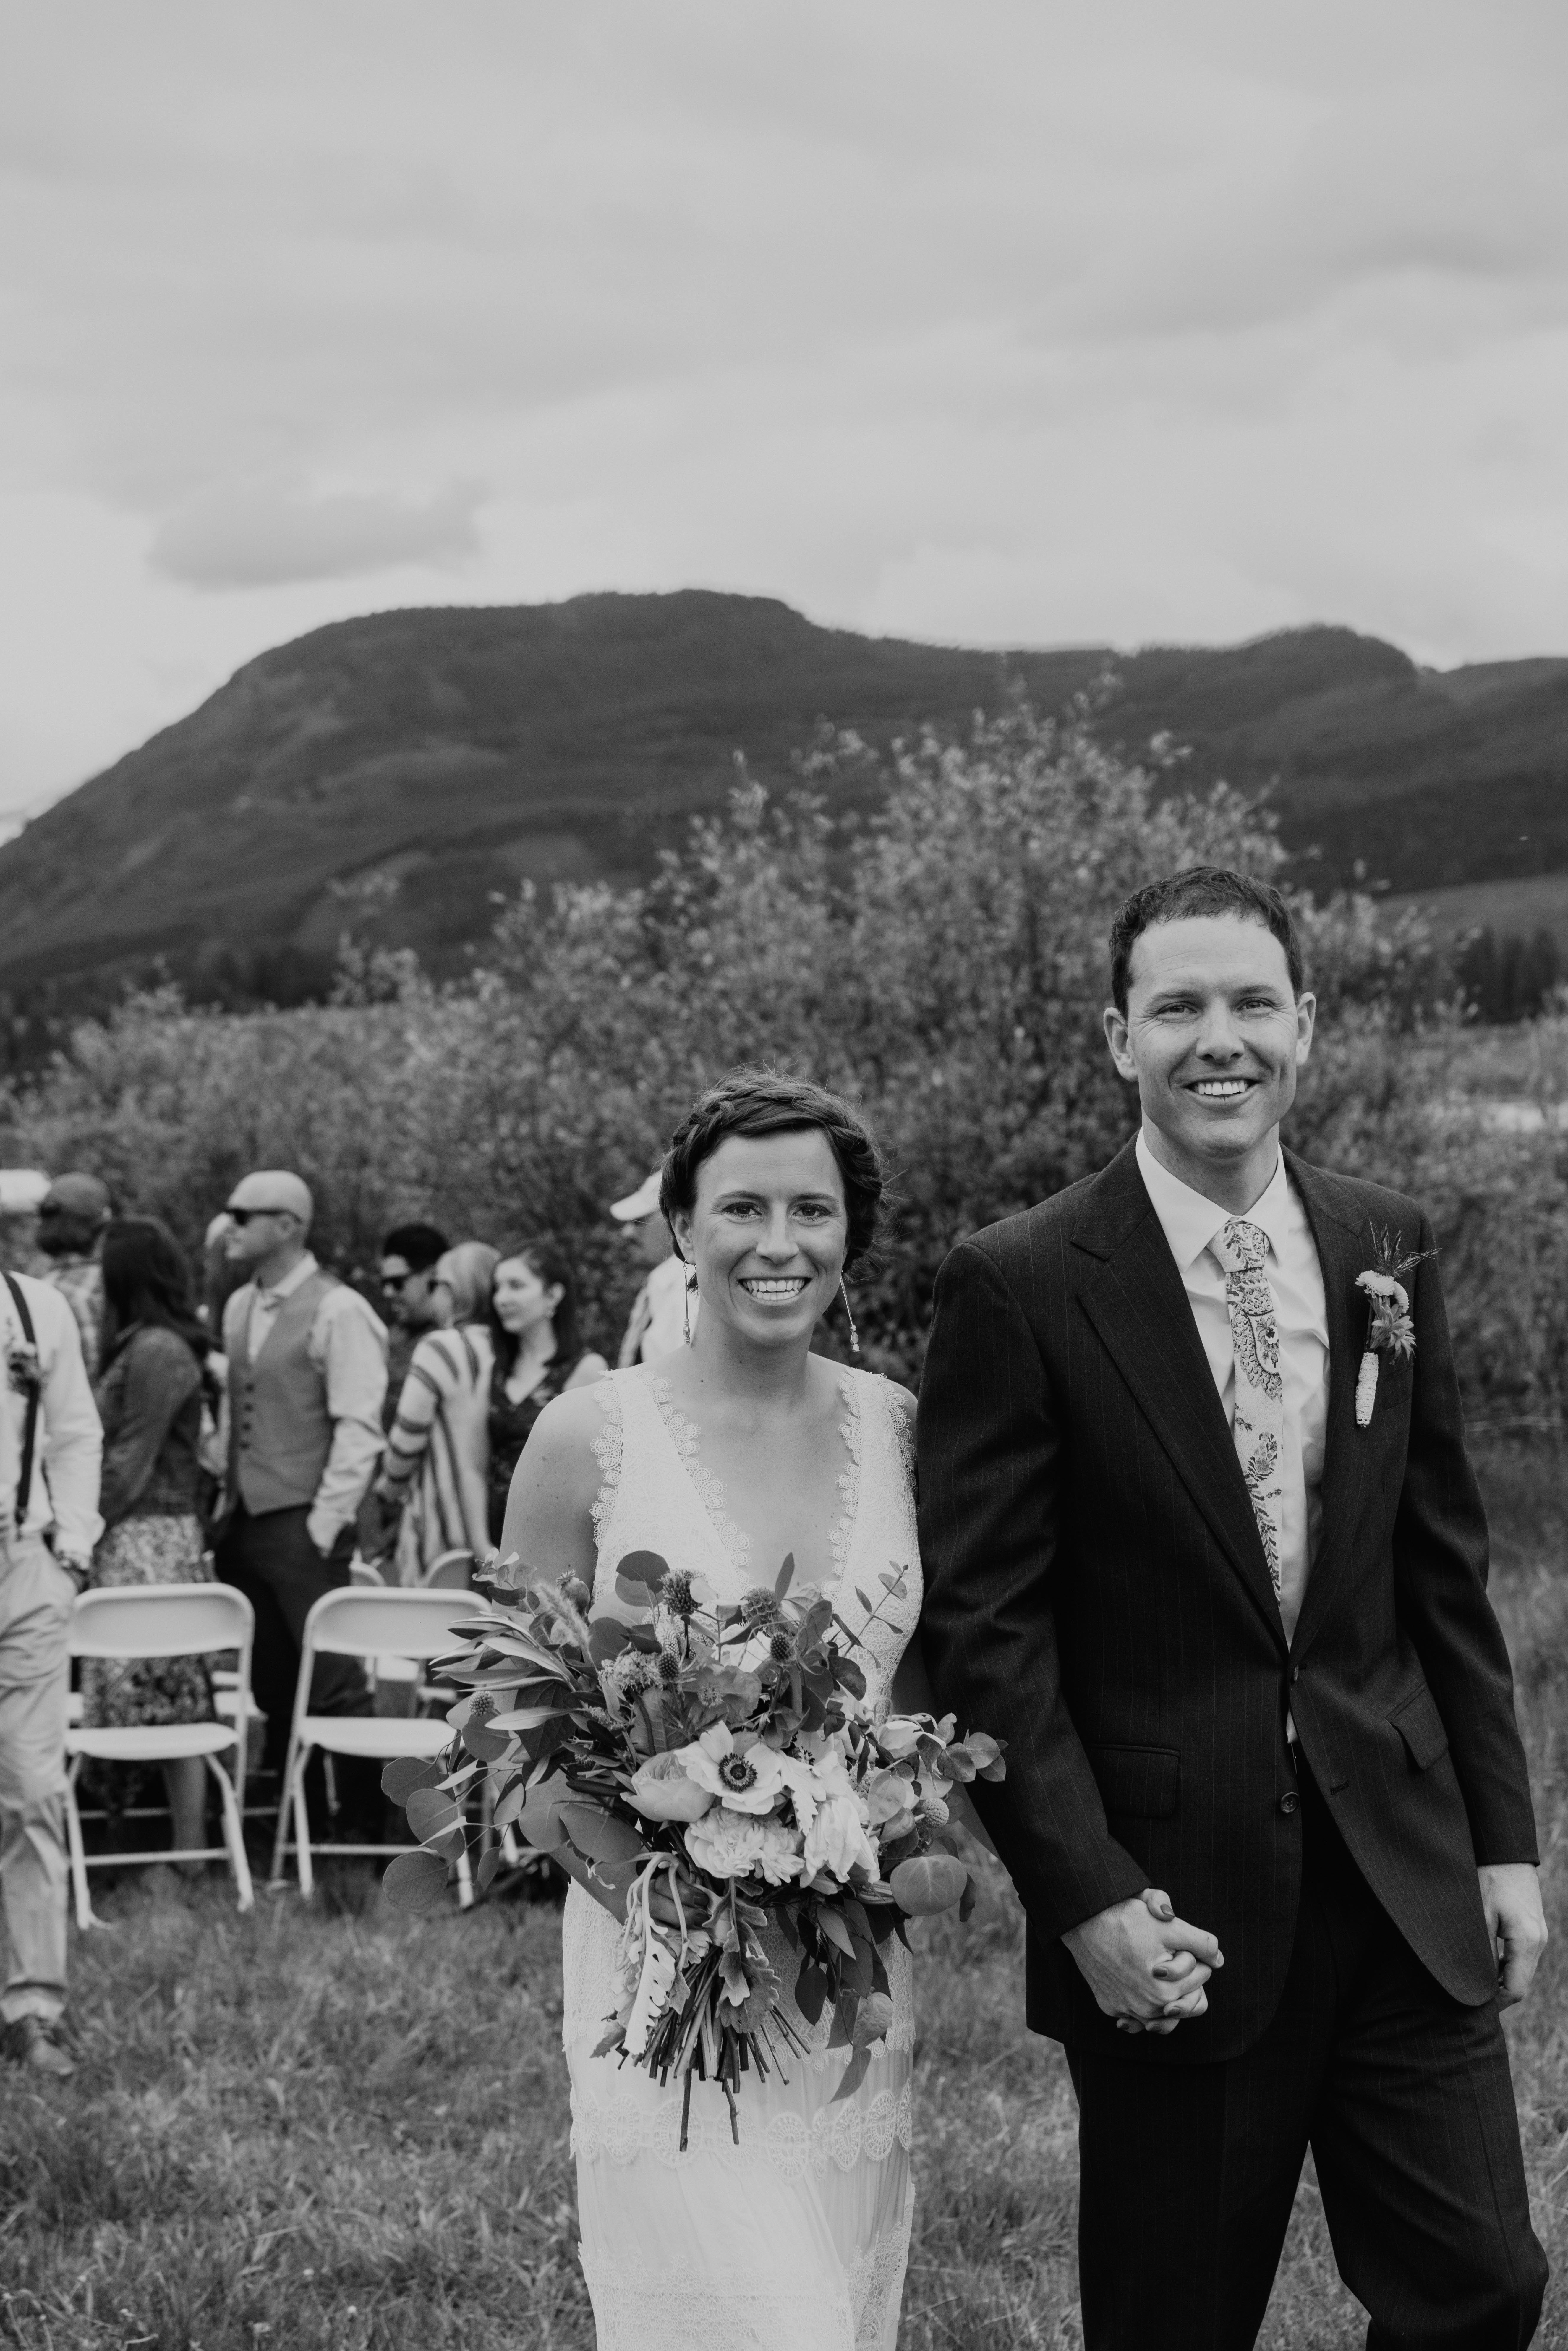 Laura_Alexe_Wedding_Crested_Butte_MegONeillPhotography__180616_121